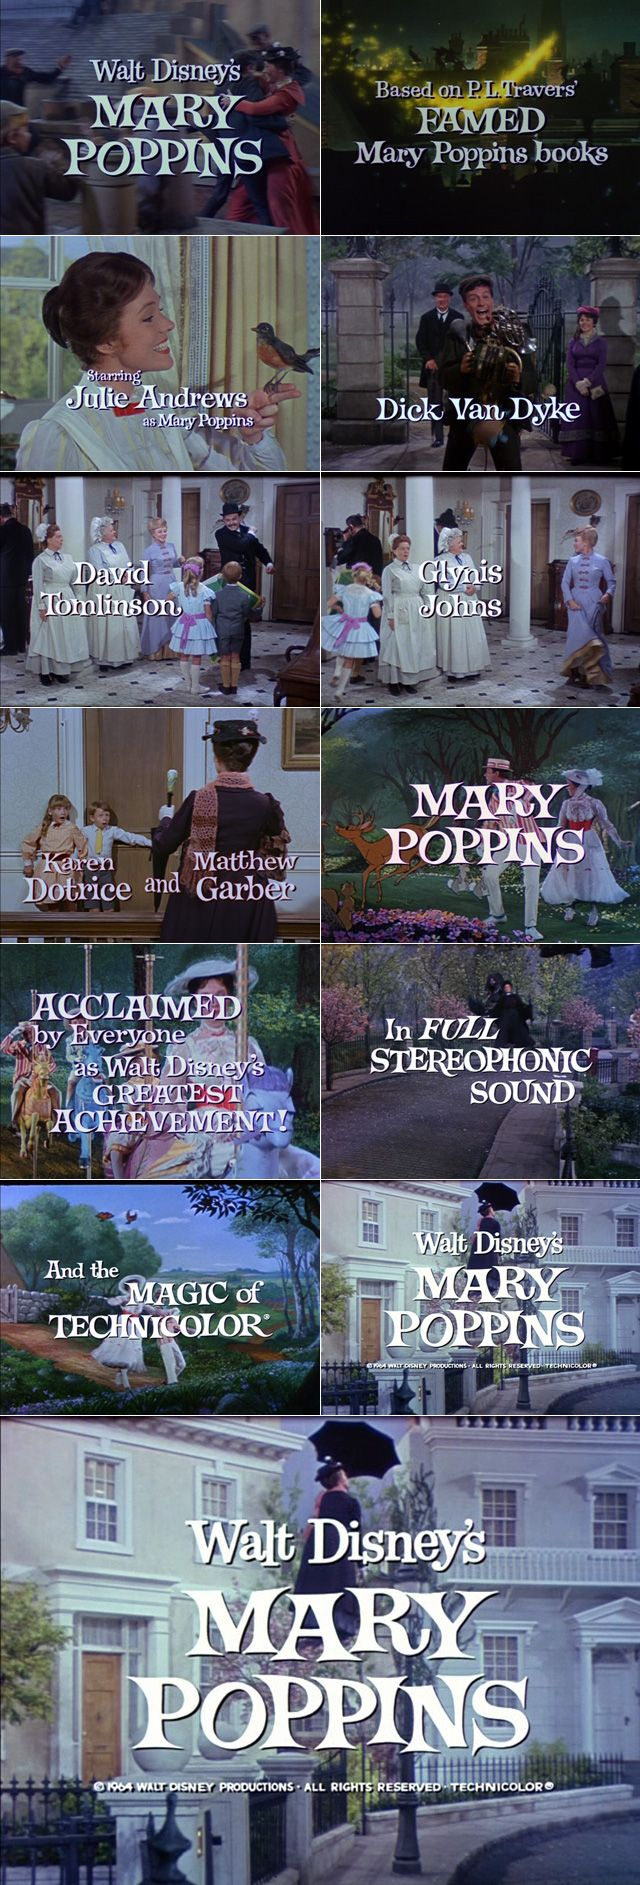 Mary Poppins (1964) trailer typography – the Movie title stills collection ✇ 'MARY POPPINS' (1964) directed by Robert Stevenson, starring Julie Andrews, Dick Van Dyke, David Tomlinson